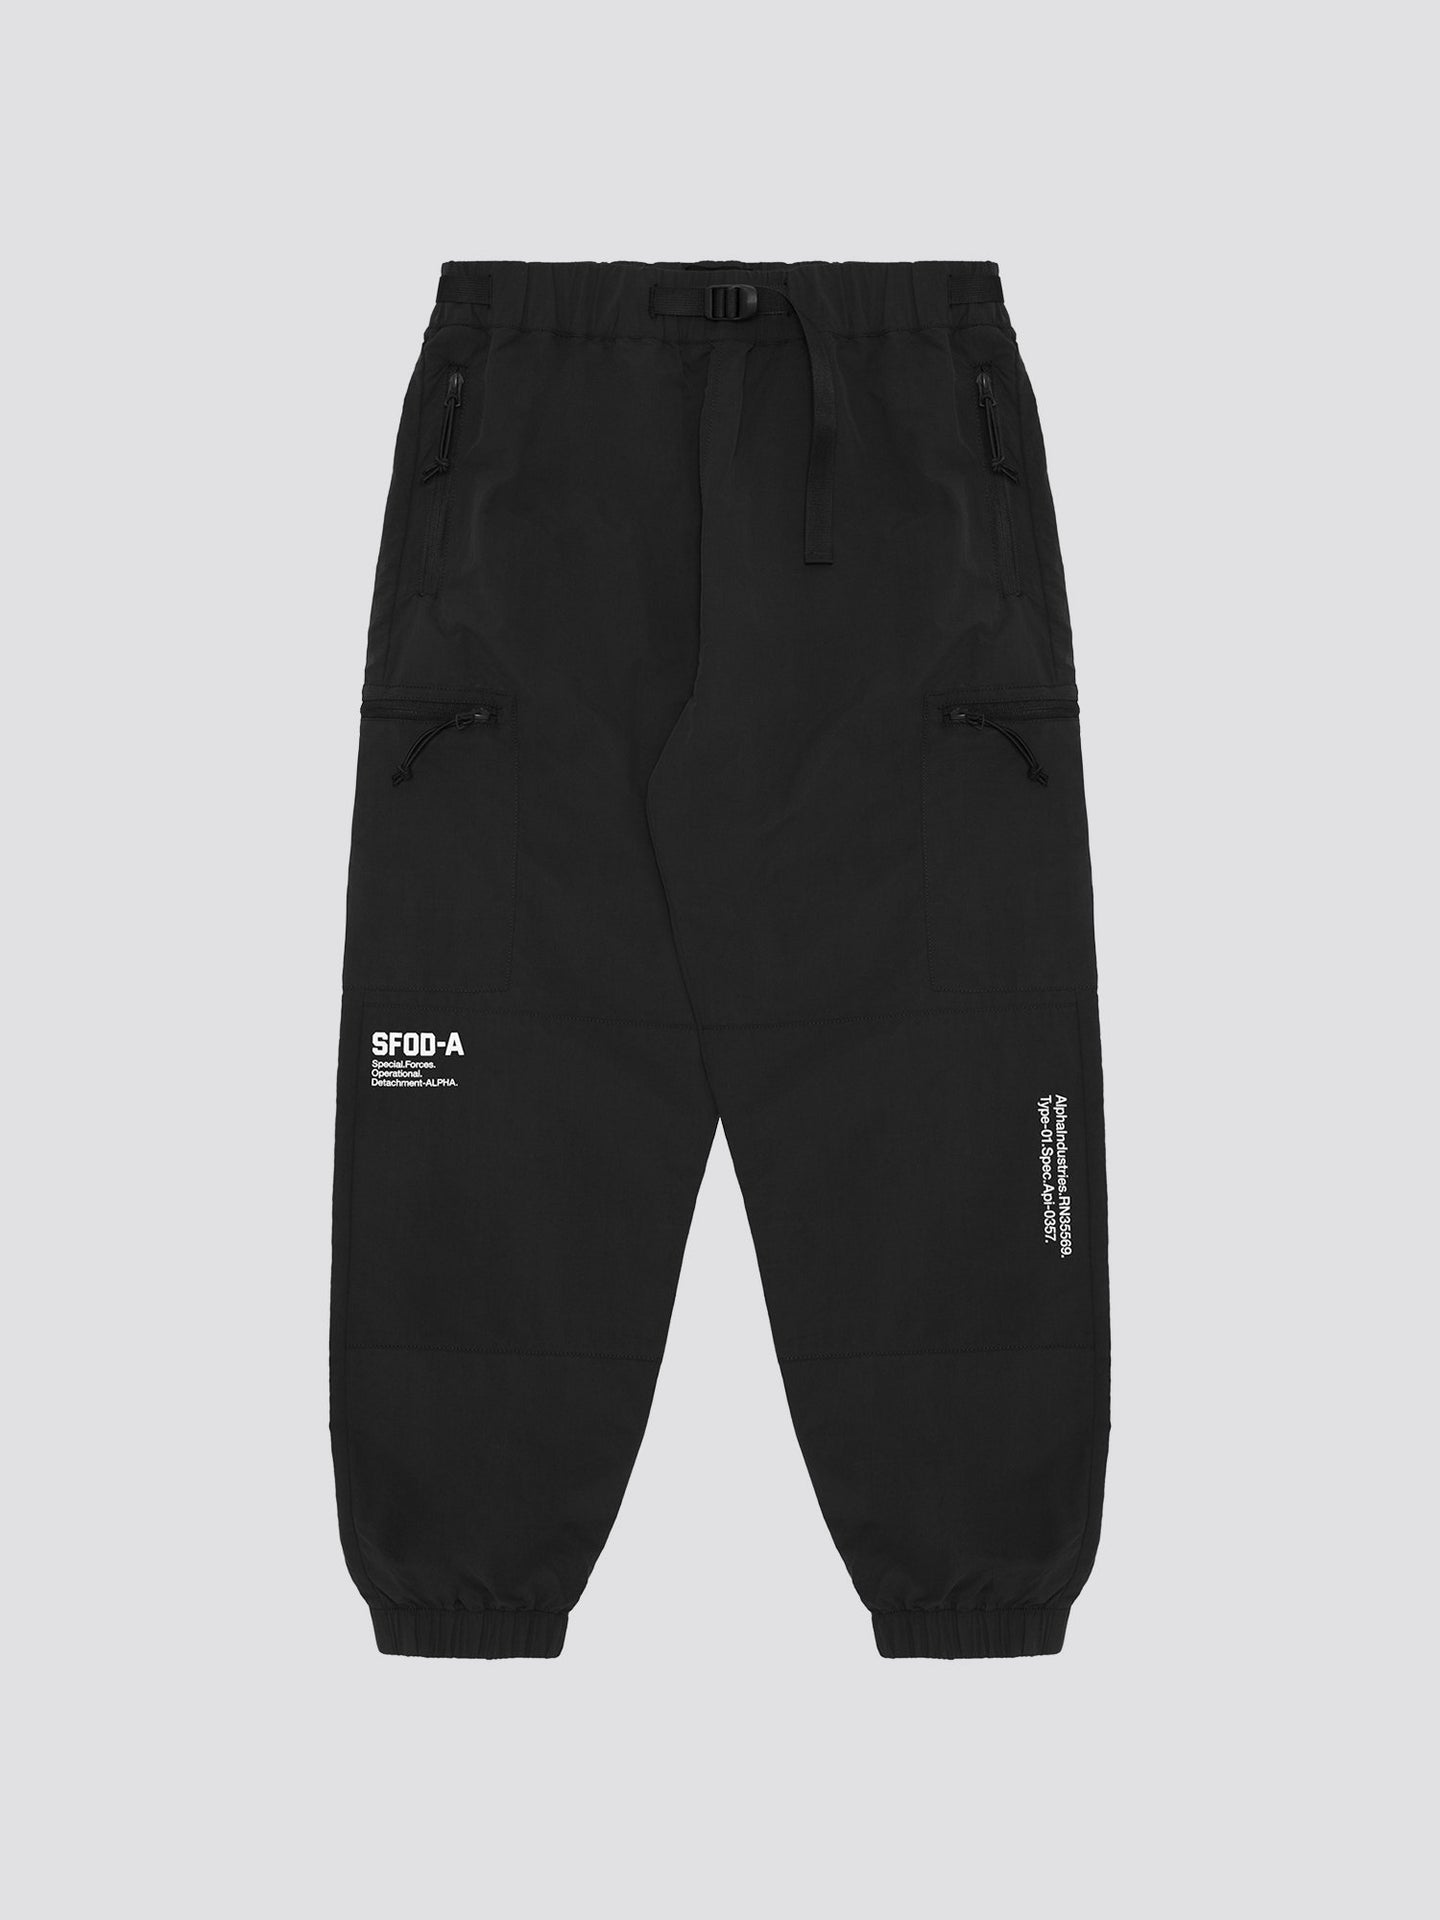 ALPHA ARMY TAPERED PANTS BOTTOM Alpha Industries, Inc. BLACK L